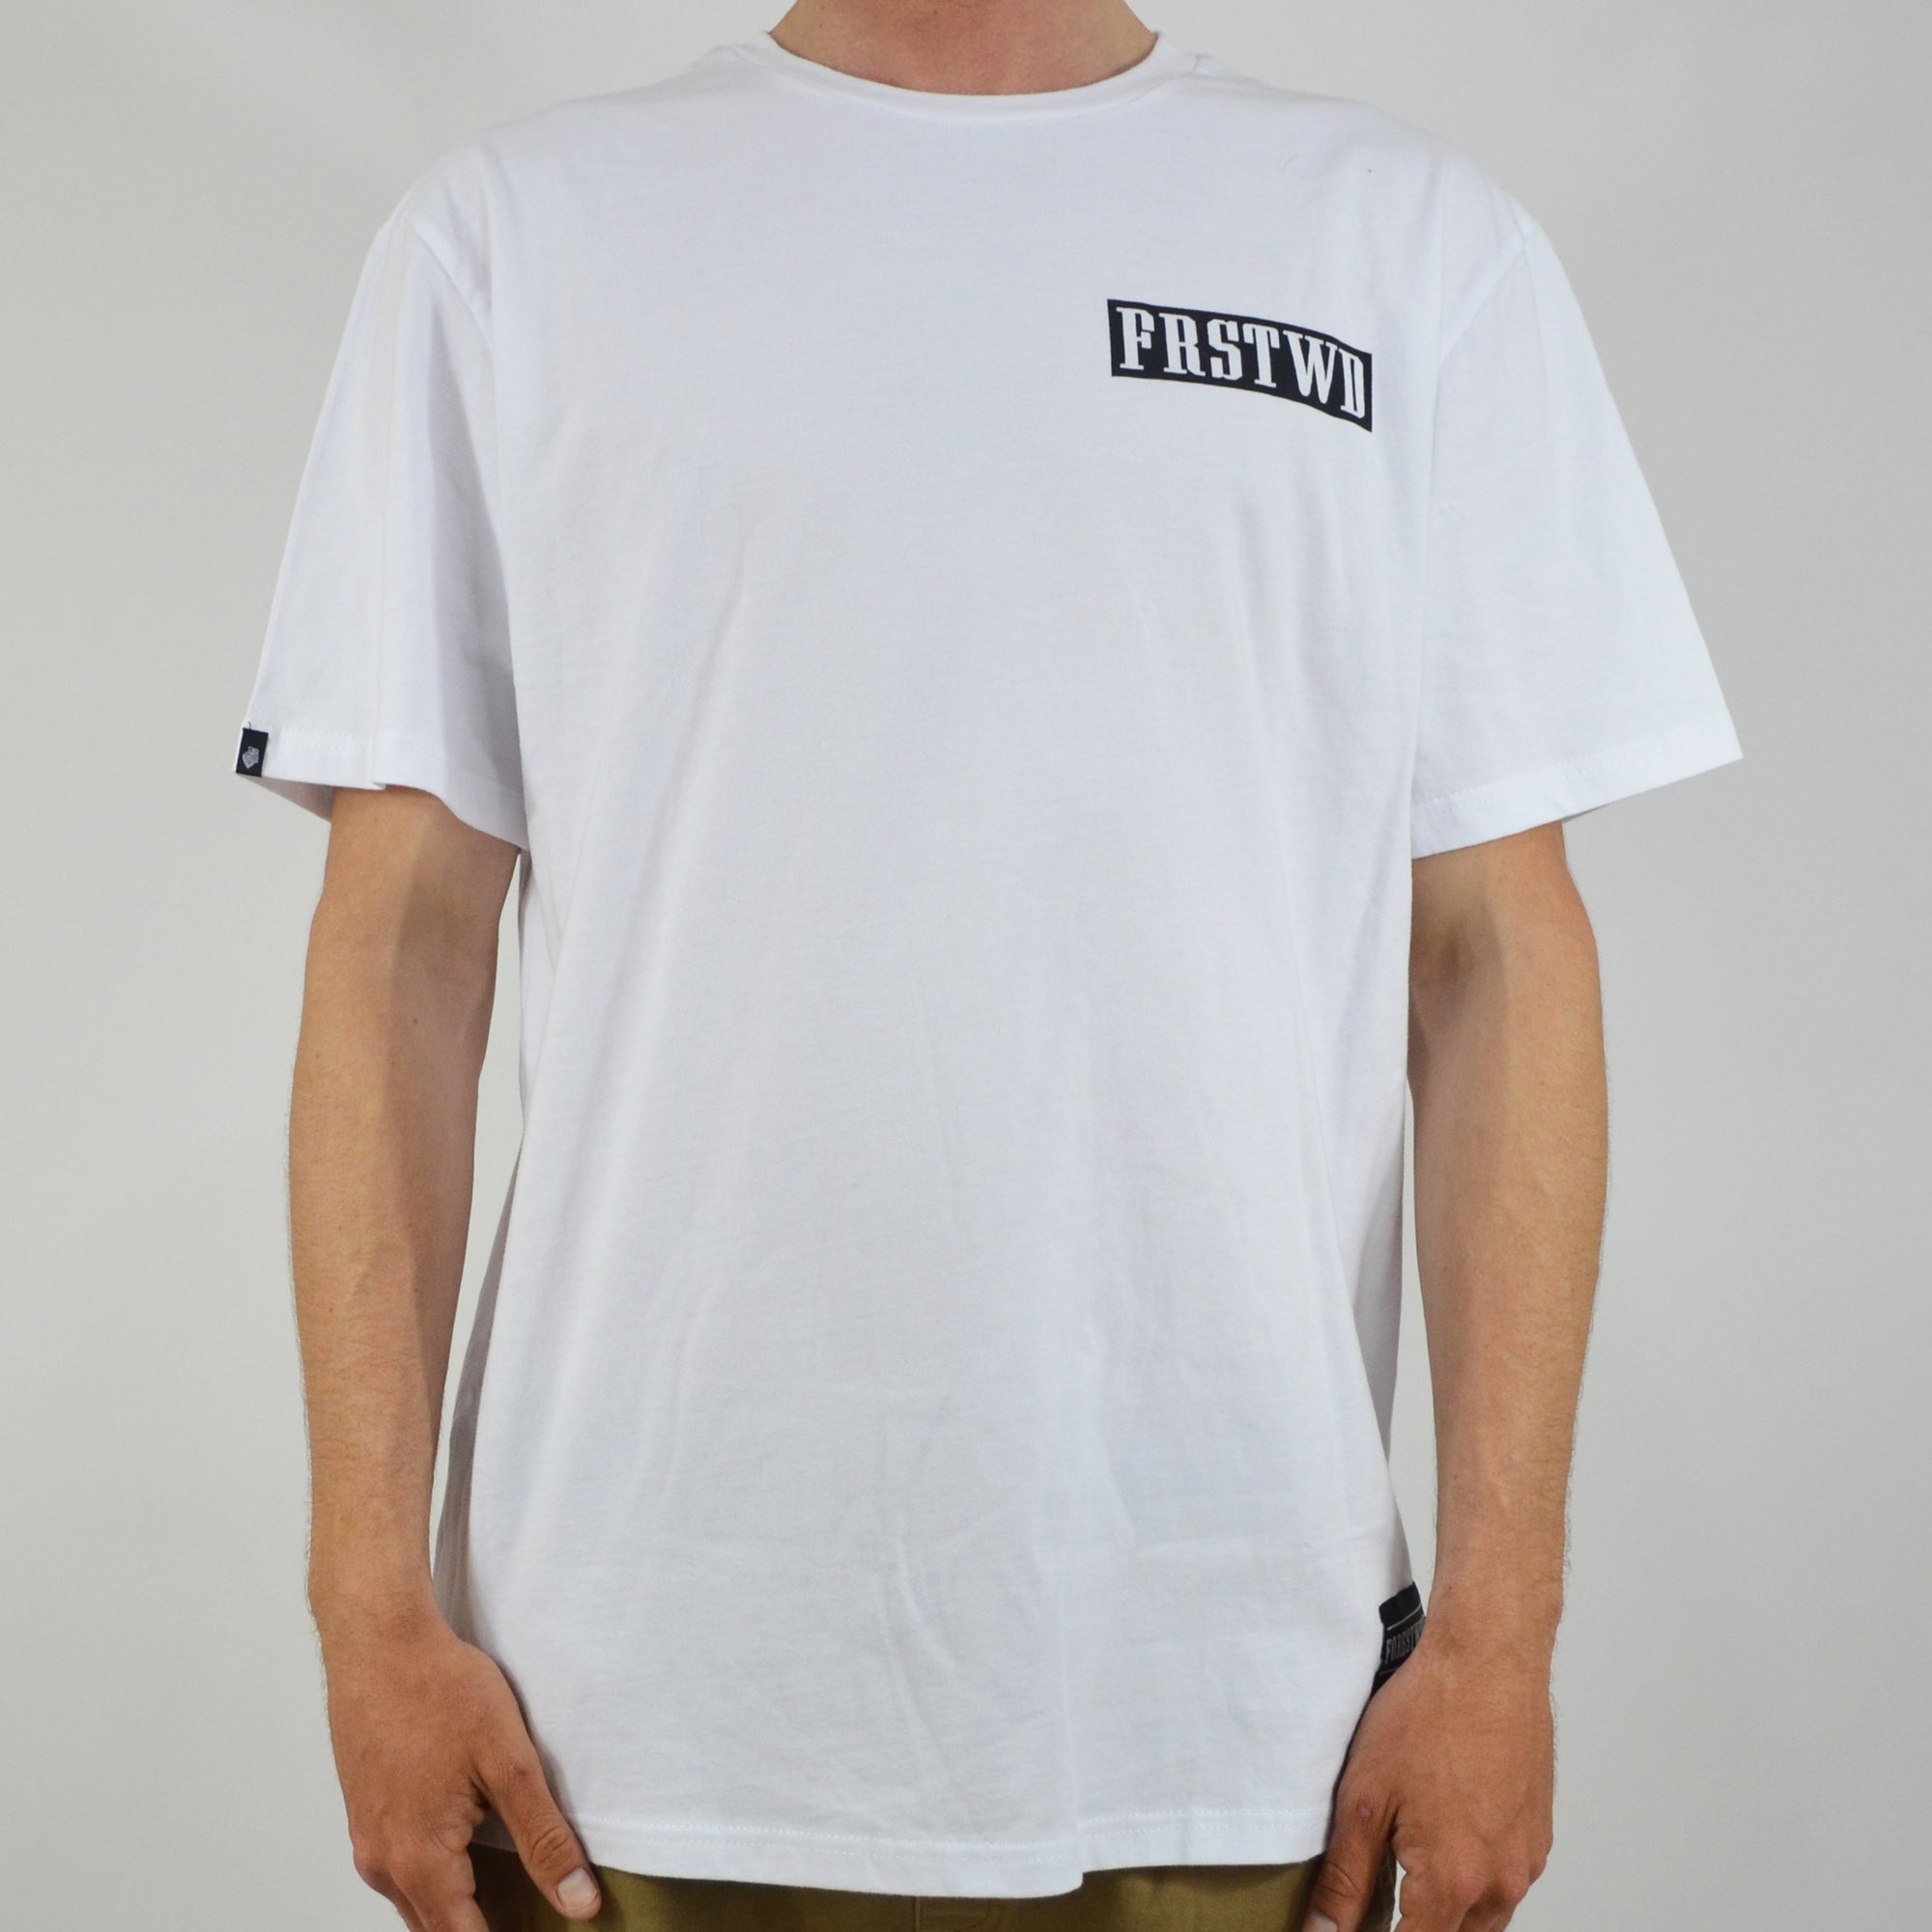 Forestwood Logo Tee - Forestwood Co